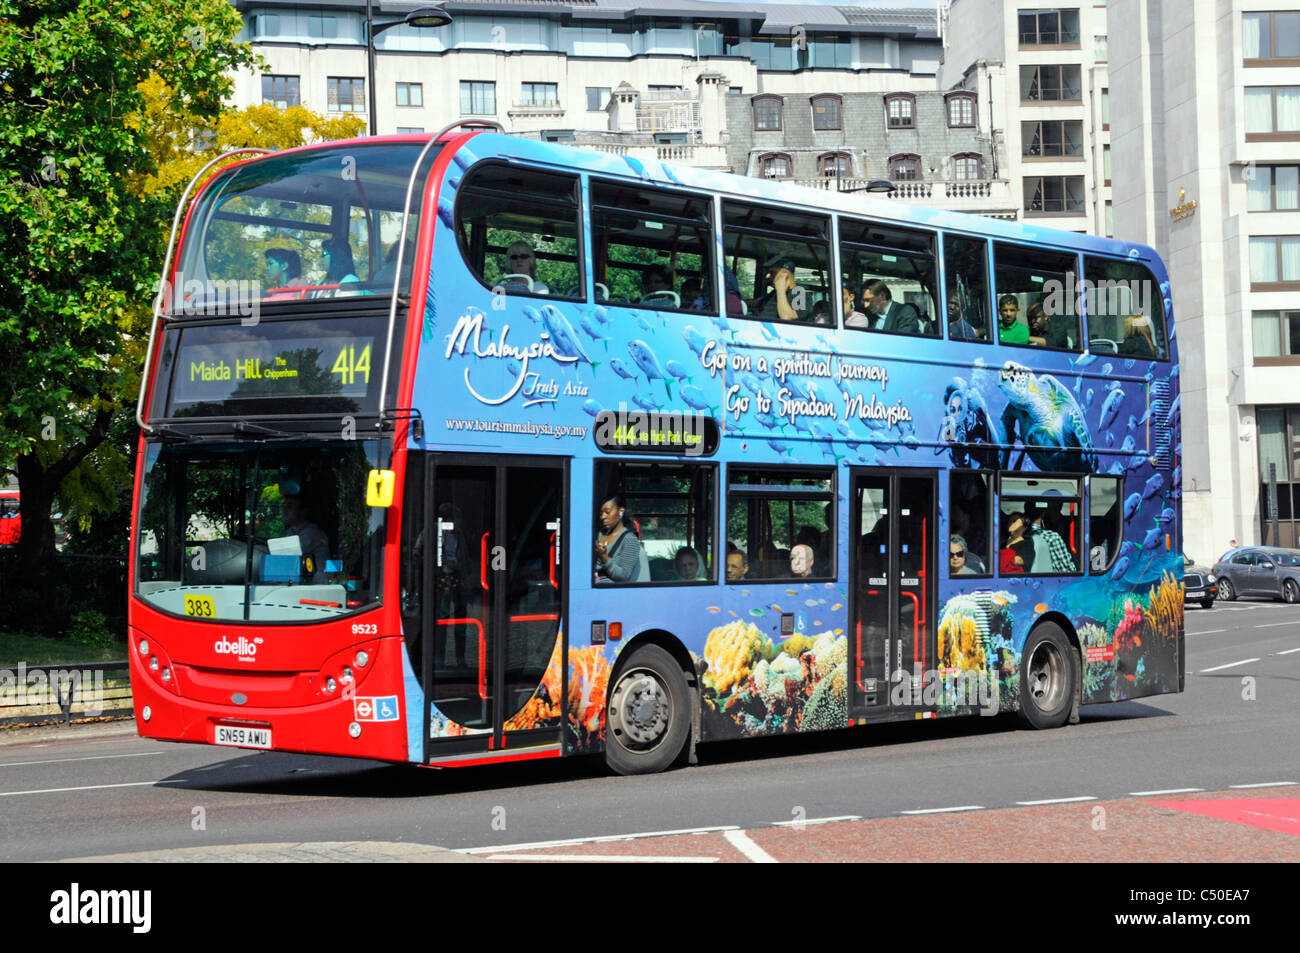 Advertising on side of London double decker bus promoting Malaysia tourism with colourful advertisement graphic - Stock Image